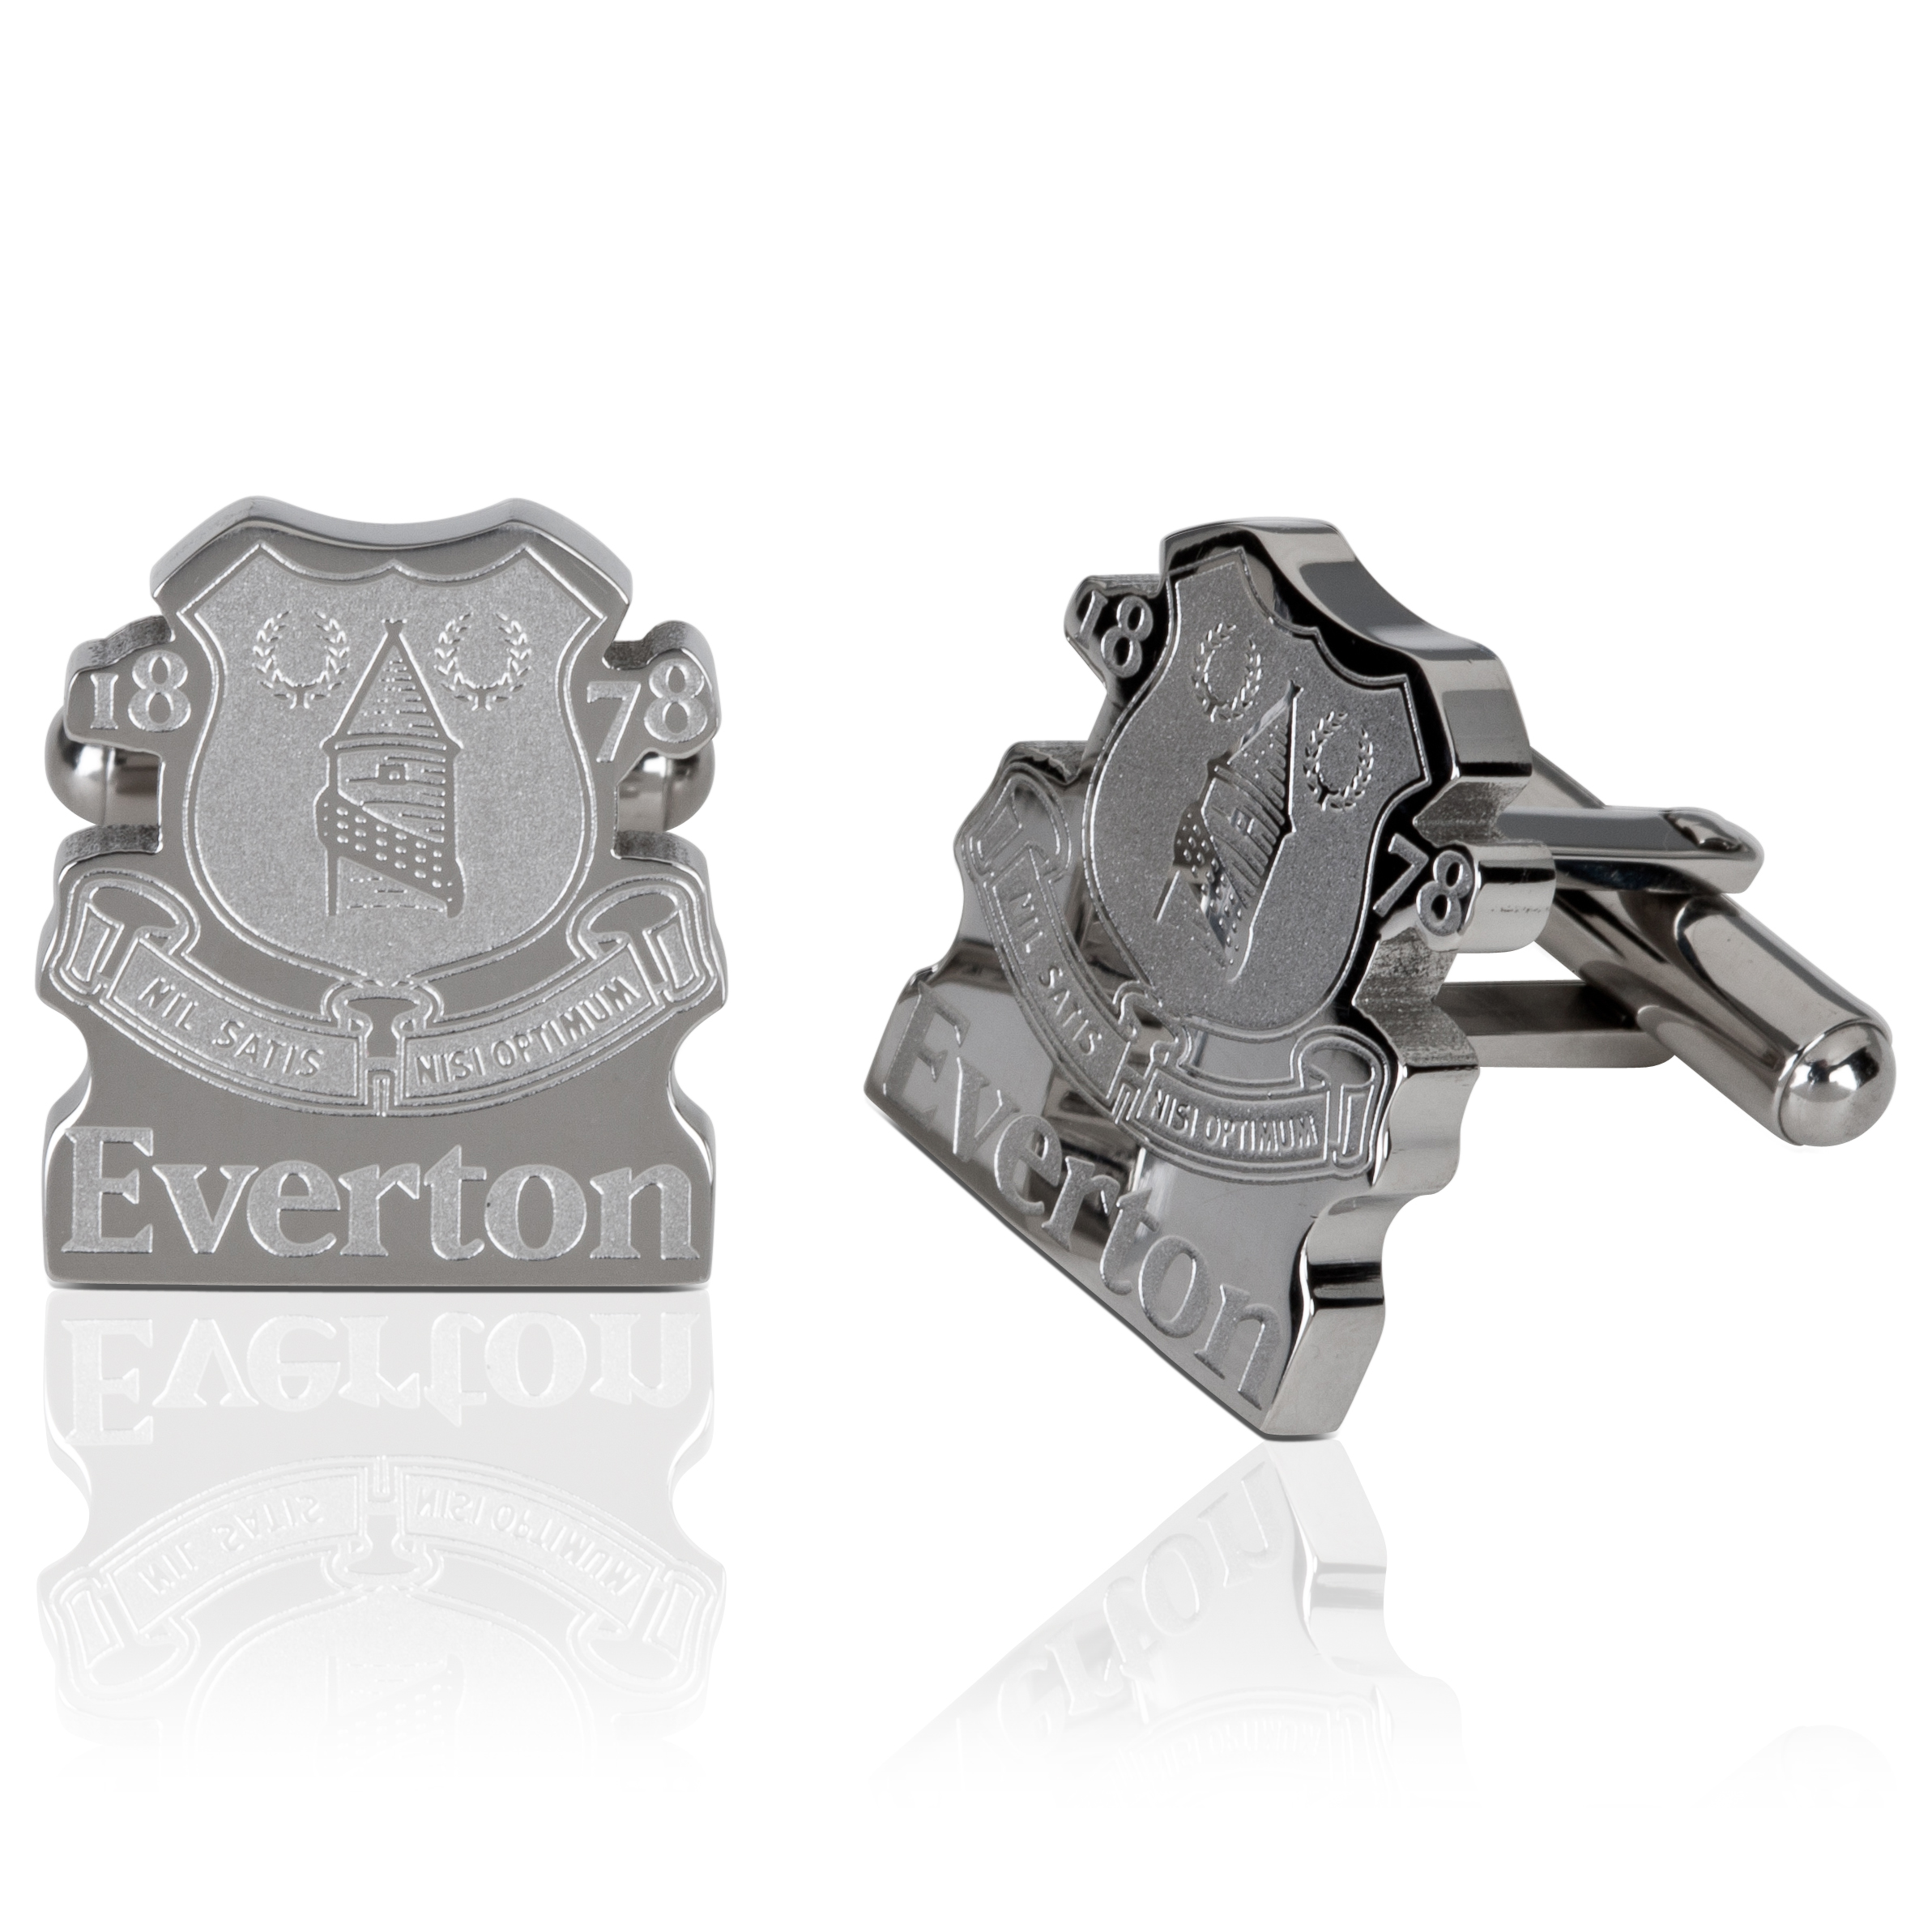 Everton Stainless Steel Cutout Cufflinks